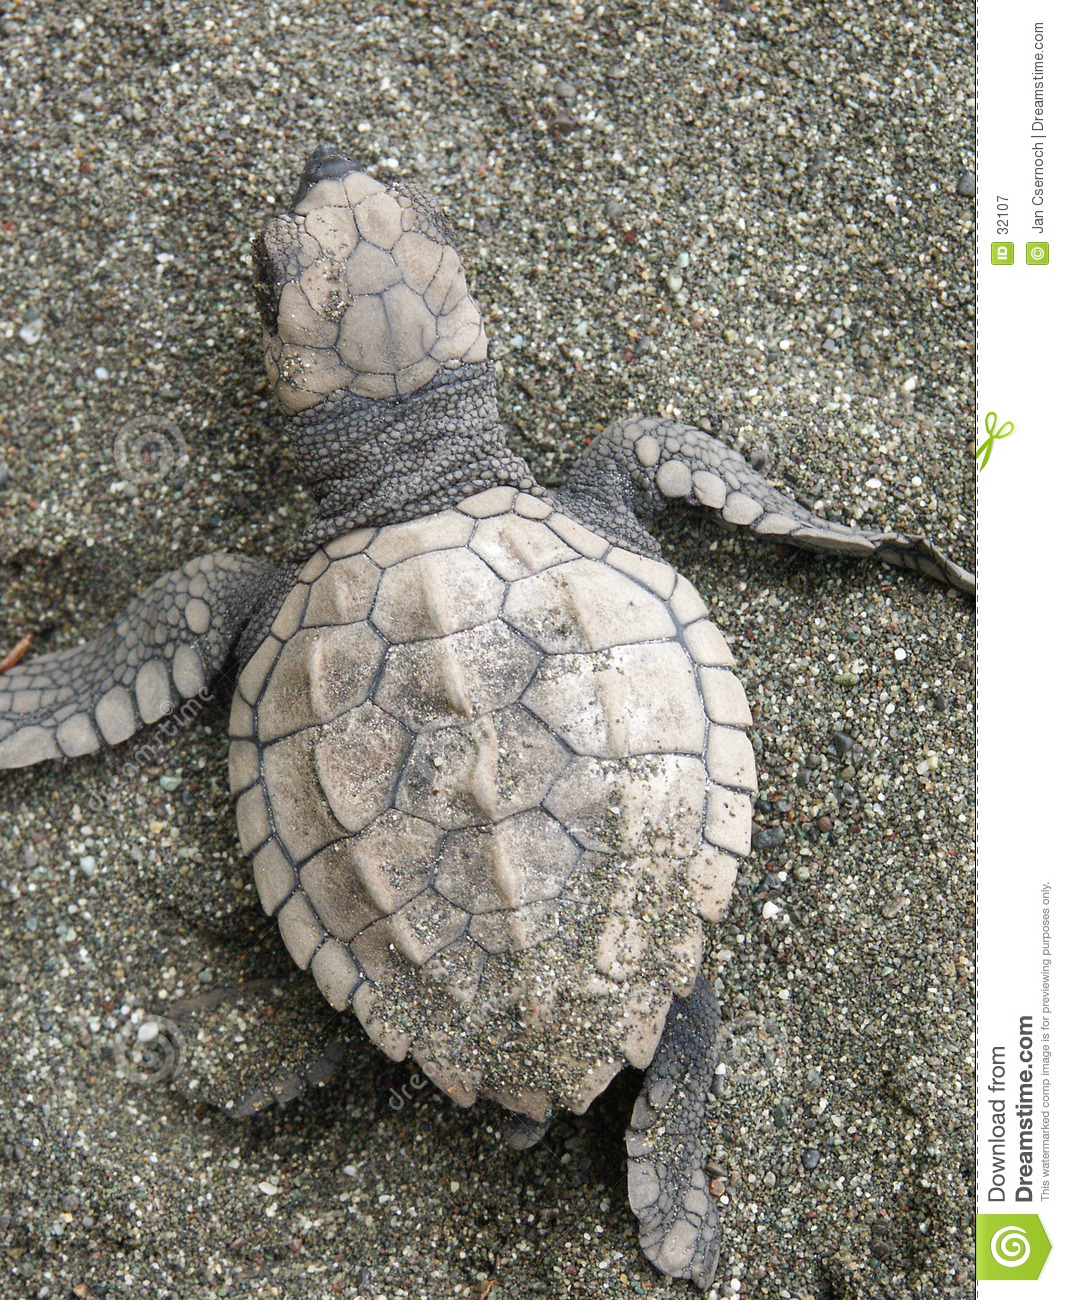 Baby Olive Ridley sea turtle